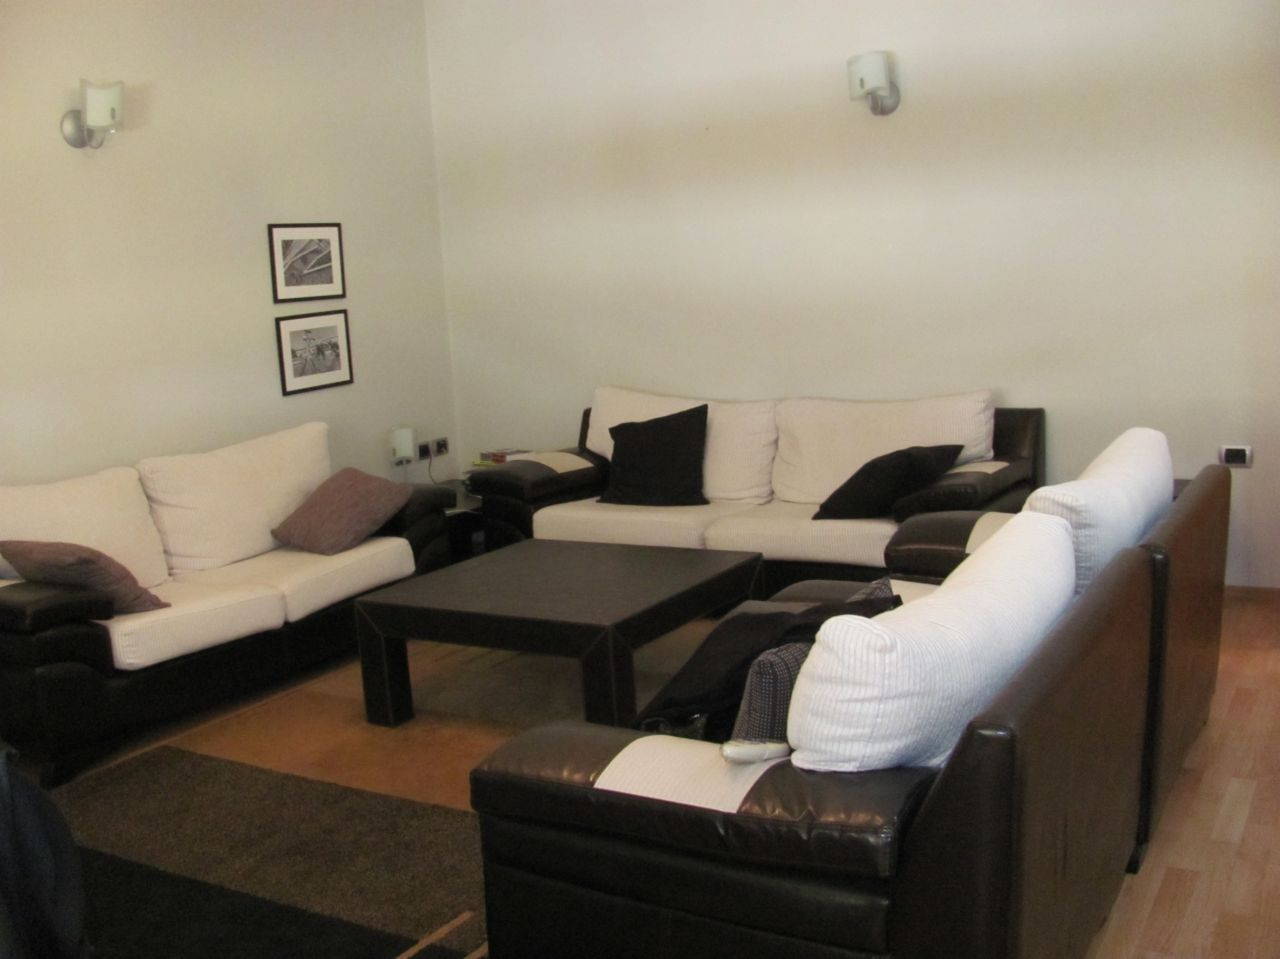 Apartment for Rent located in the Blloku Area in Tirana, the capital of Albania.